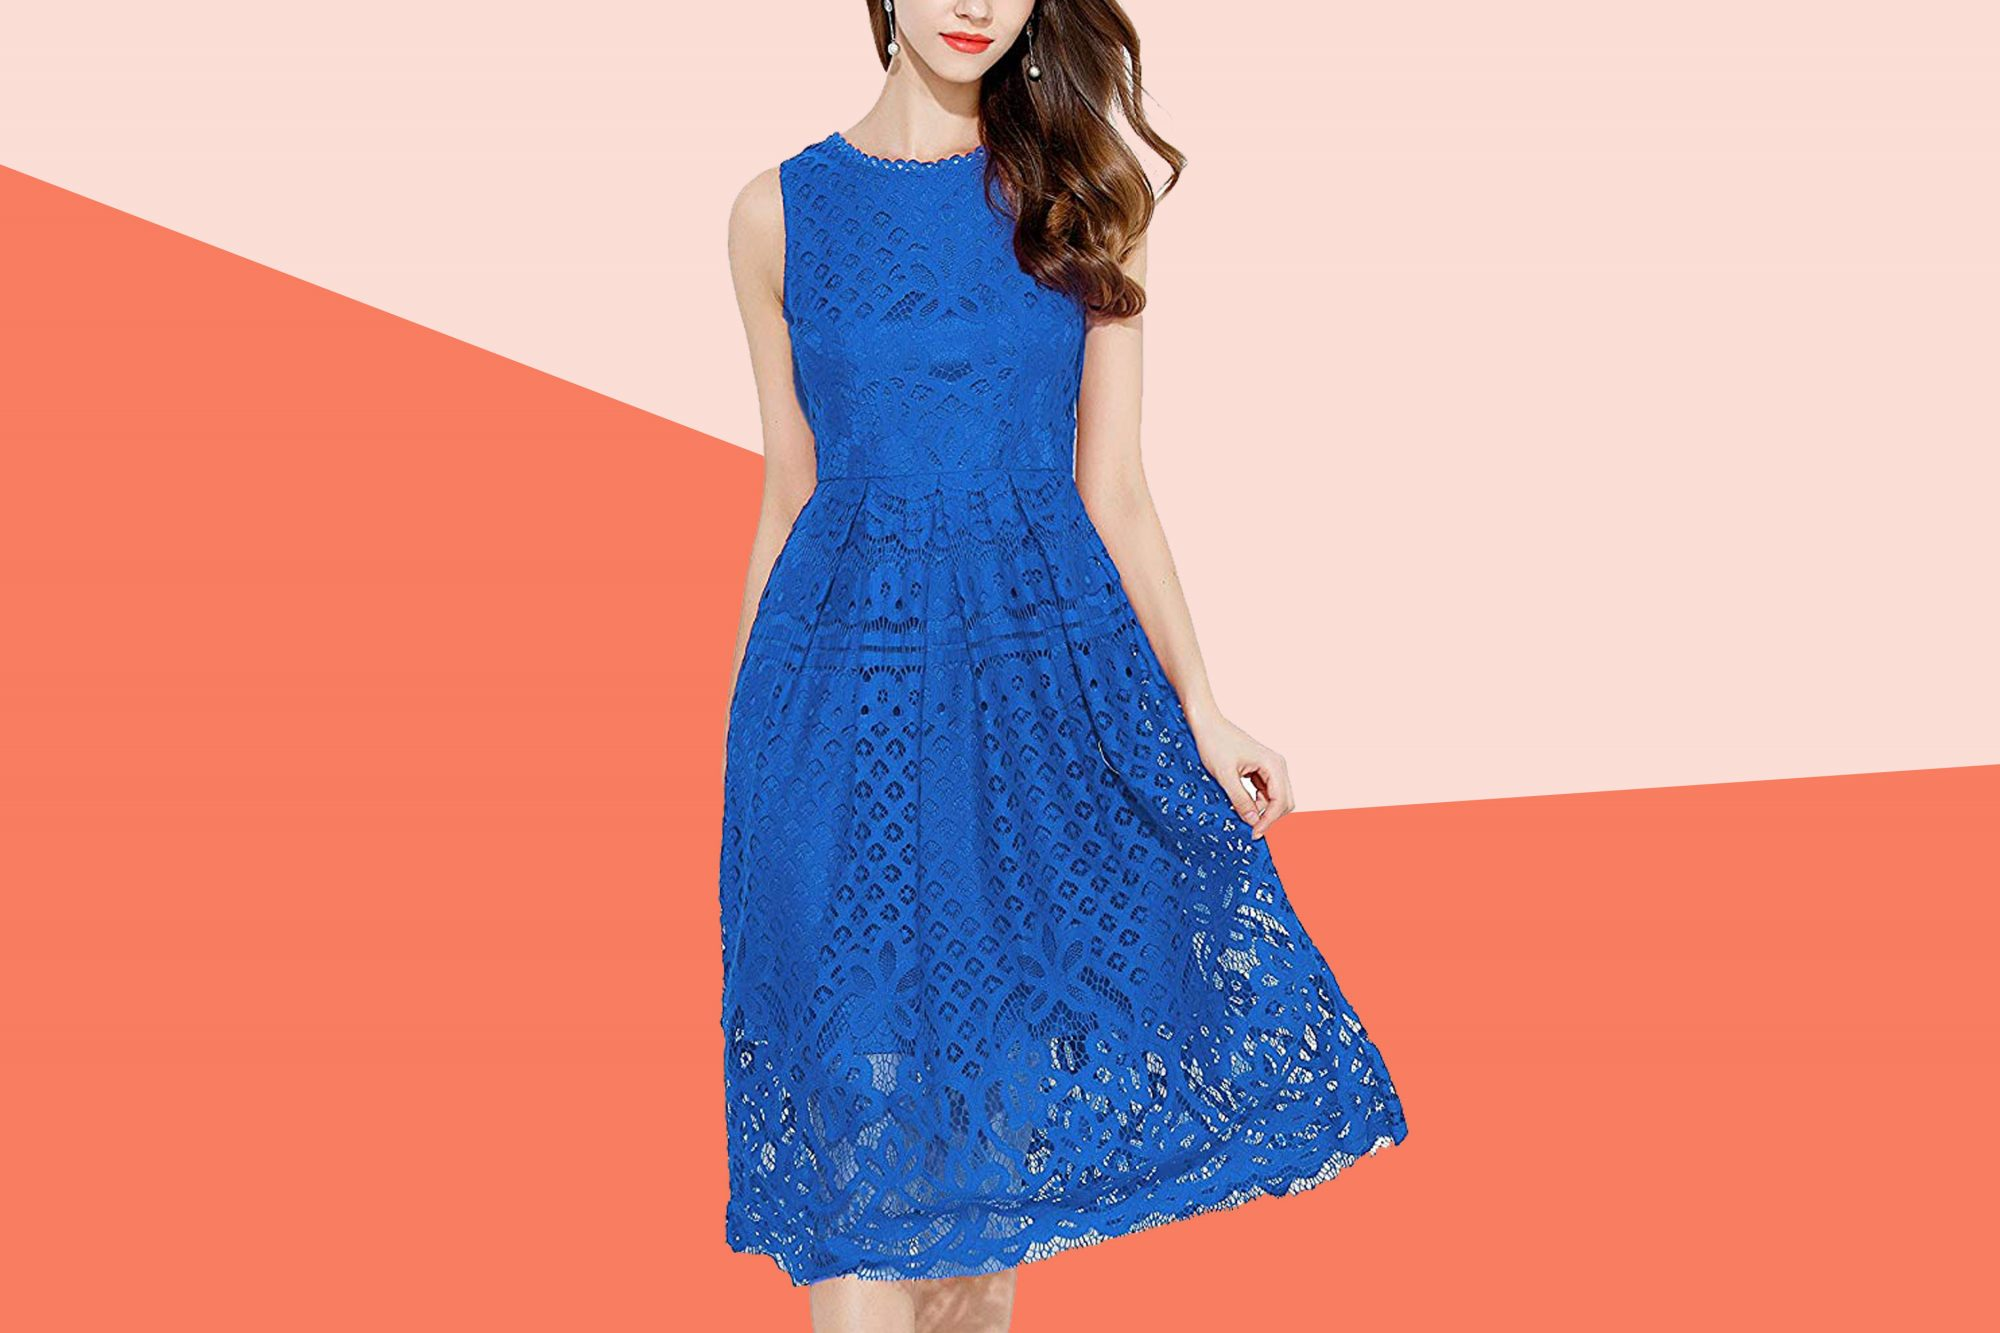 Veiisar Lace Fit and Flare Cocktail Dress